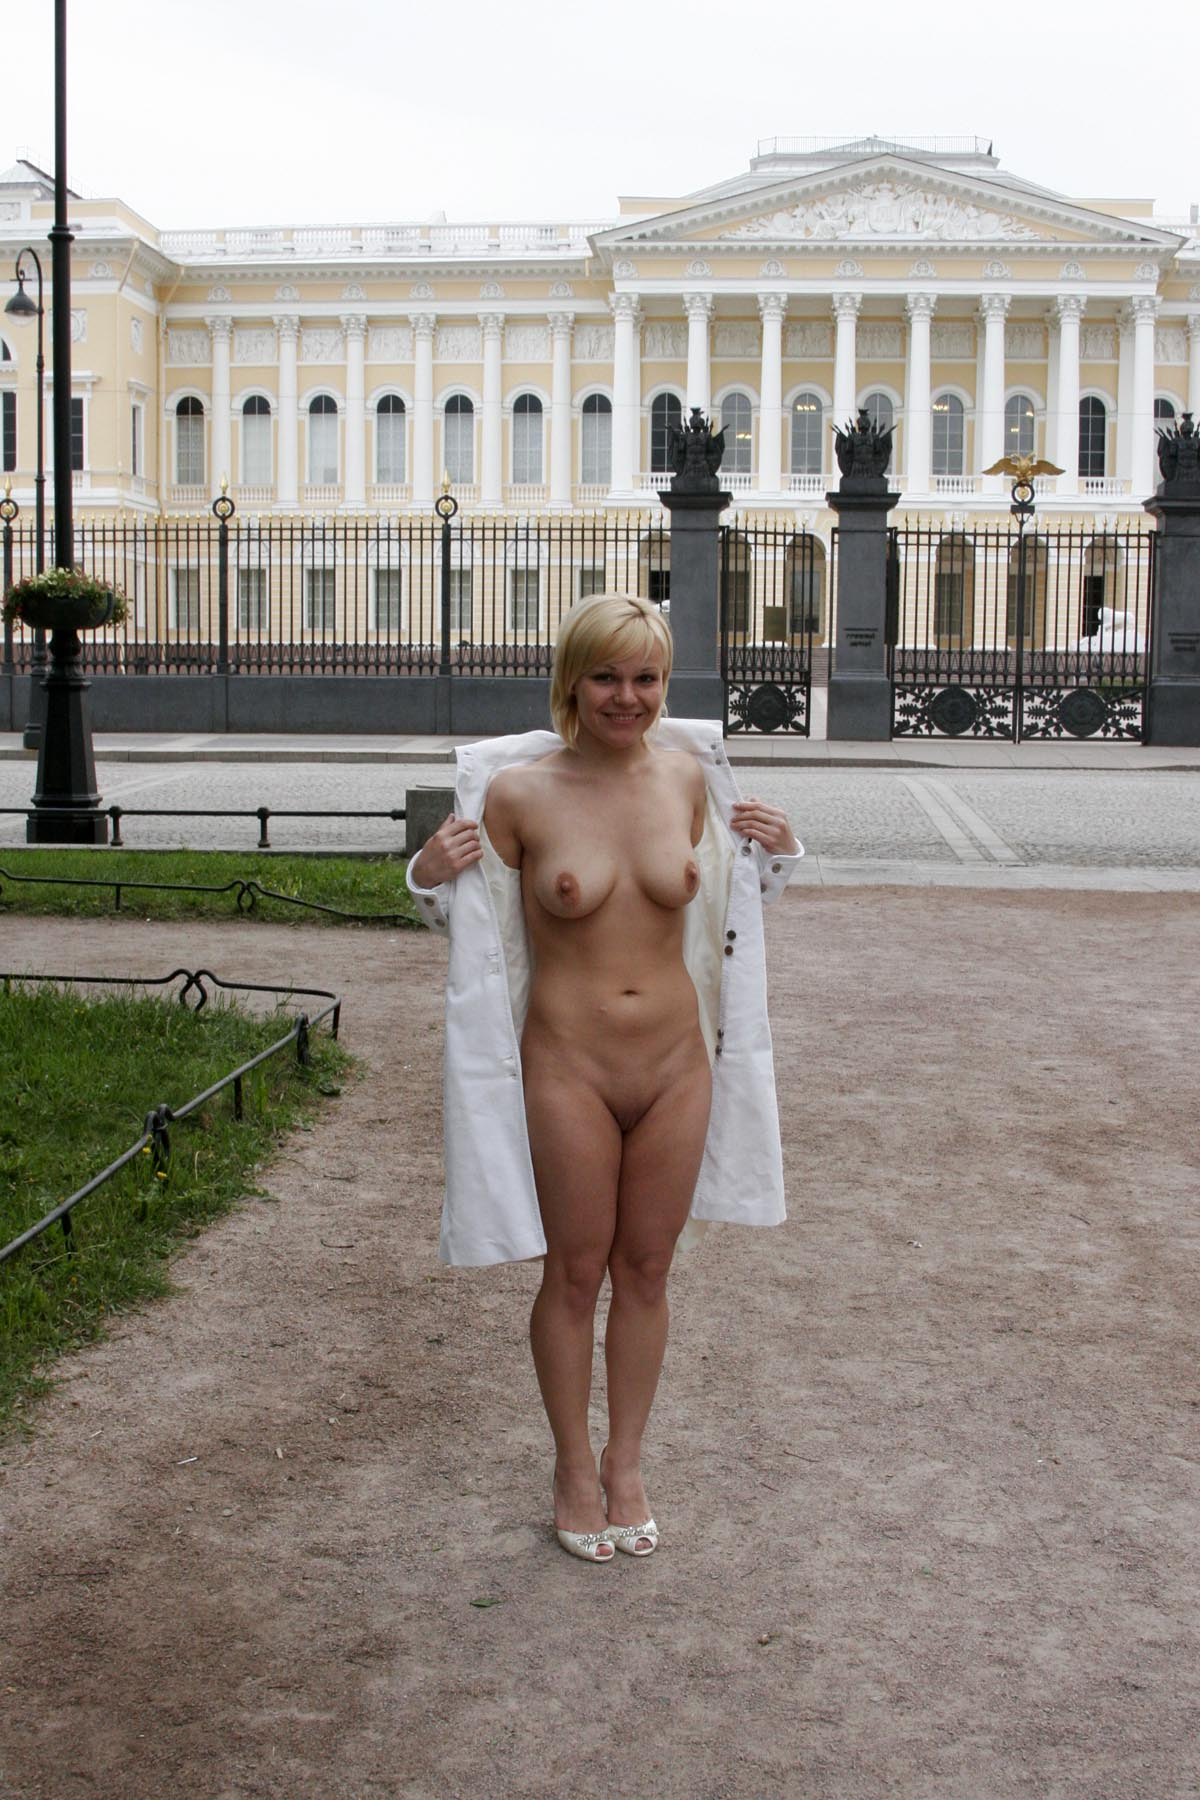 Girls Is Naked In The City